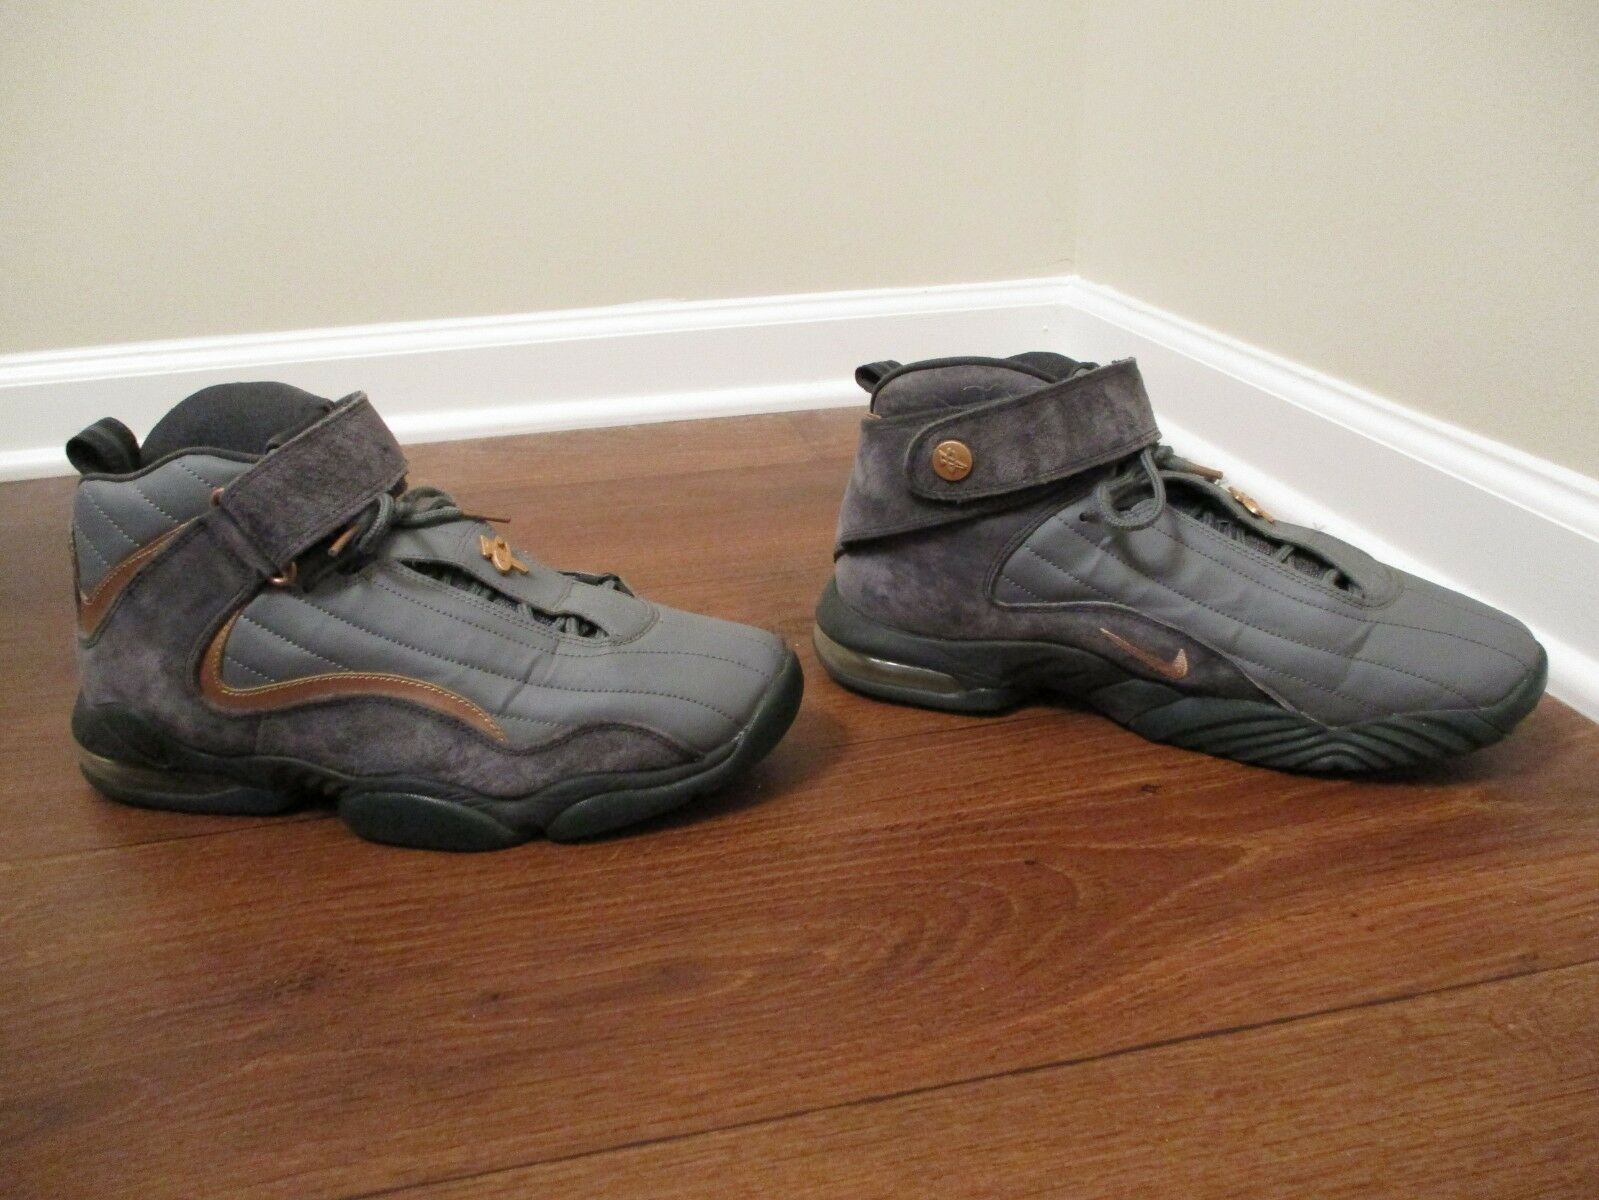 Used Worn Size 10 Nike Air Penny 4 IV shoes Wolf Grey & Metallic Coppertone